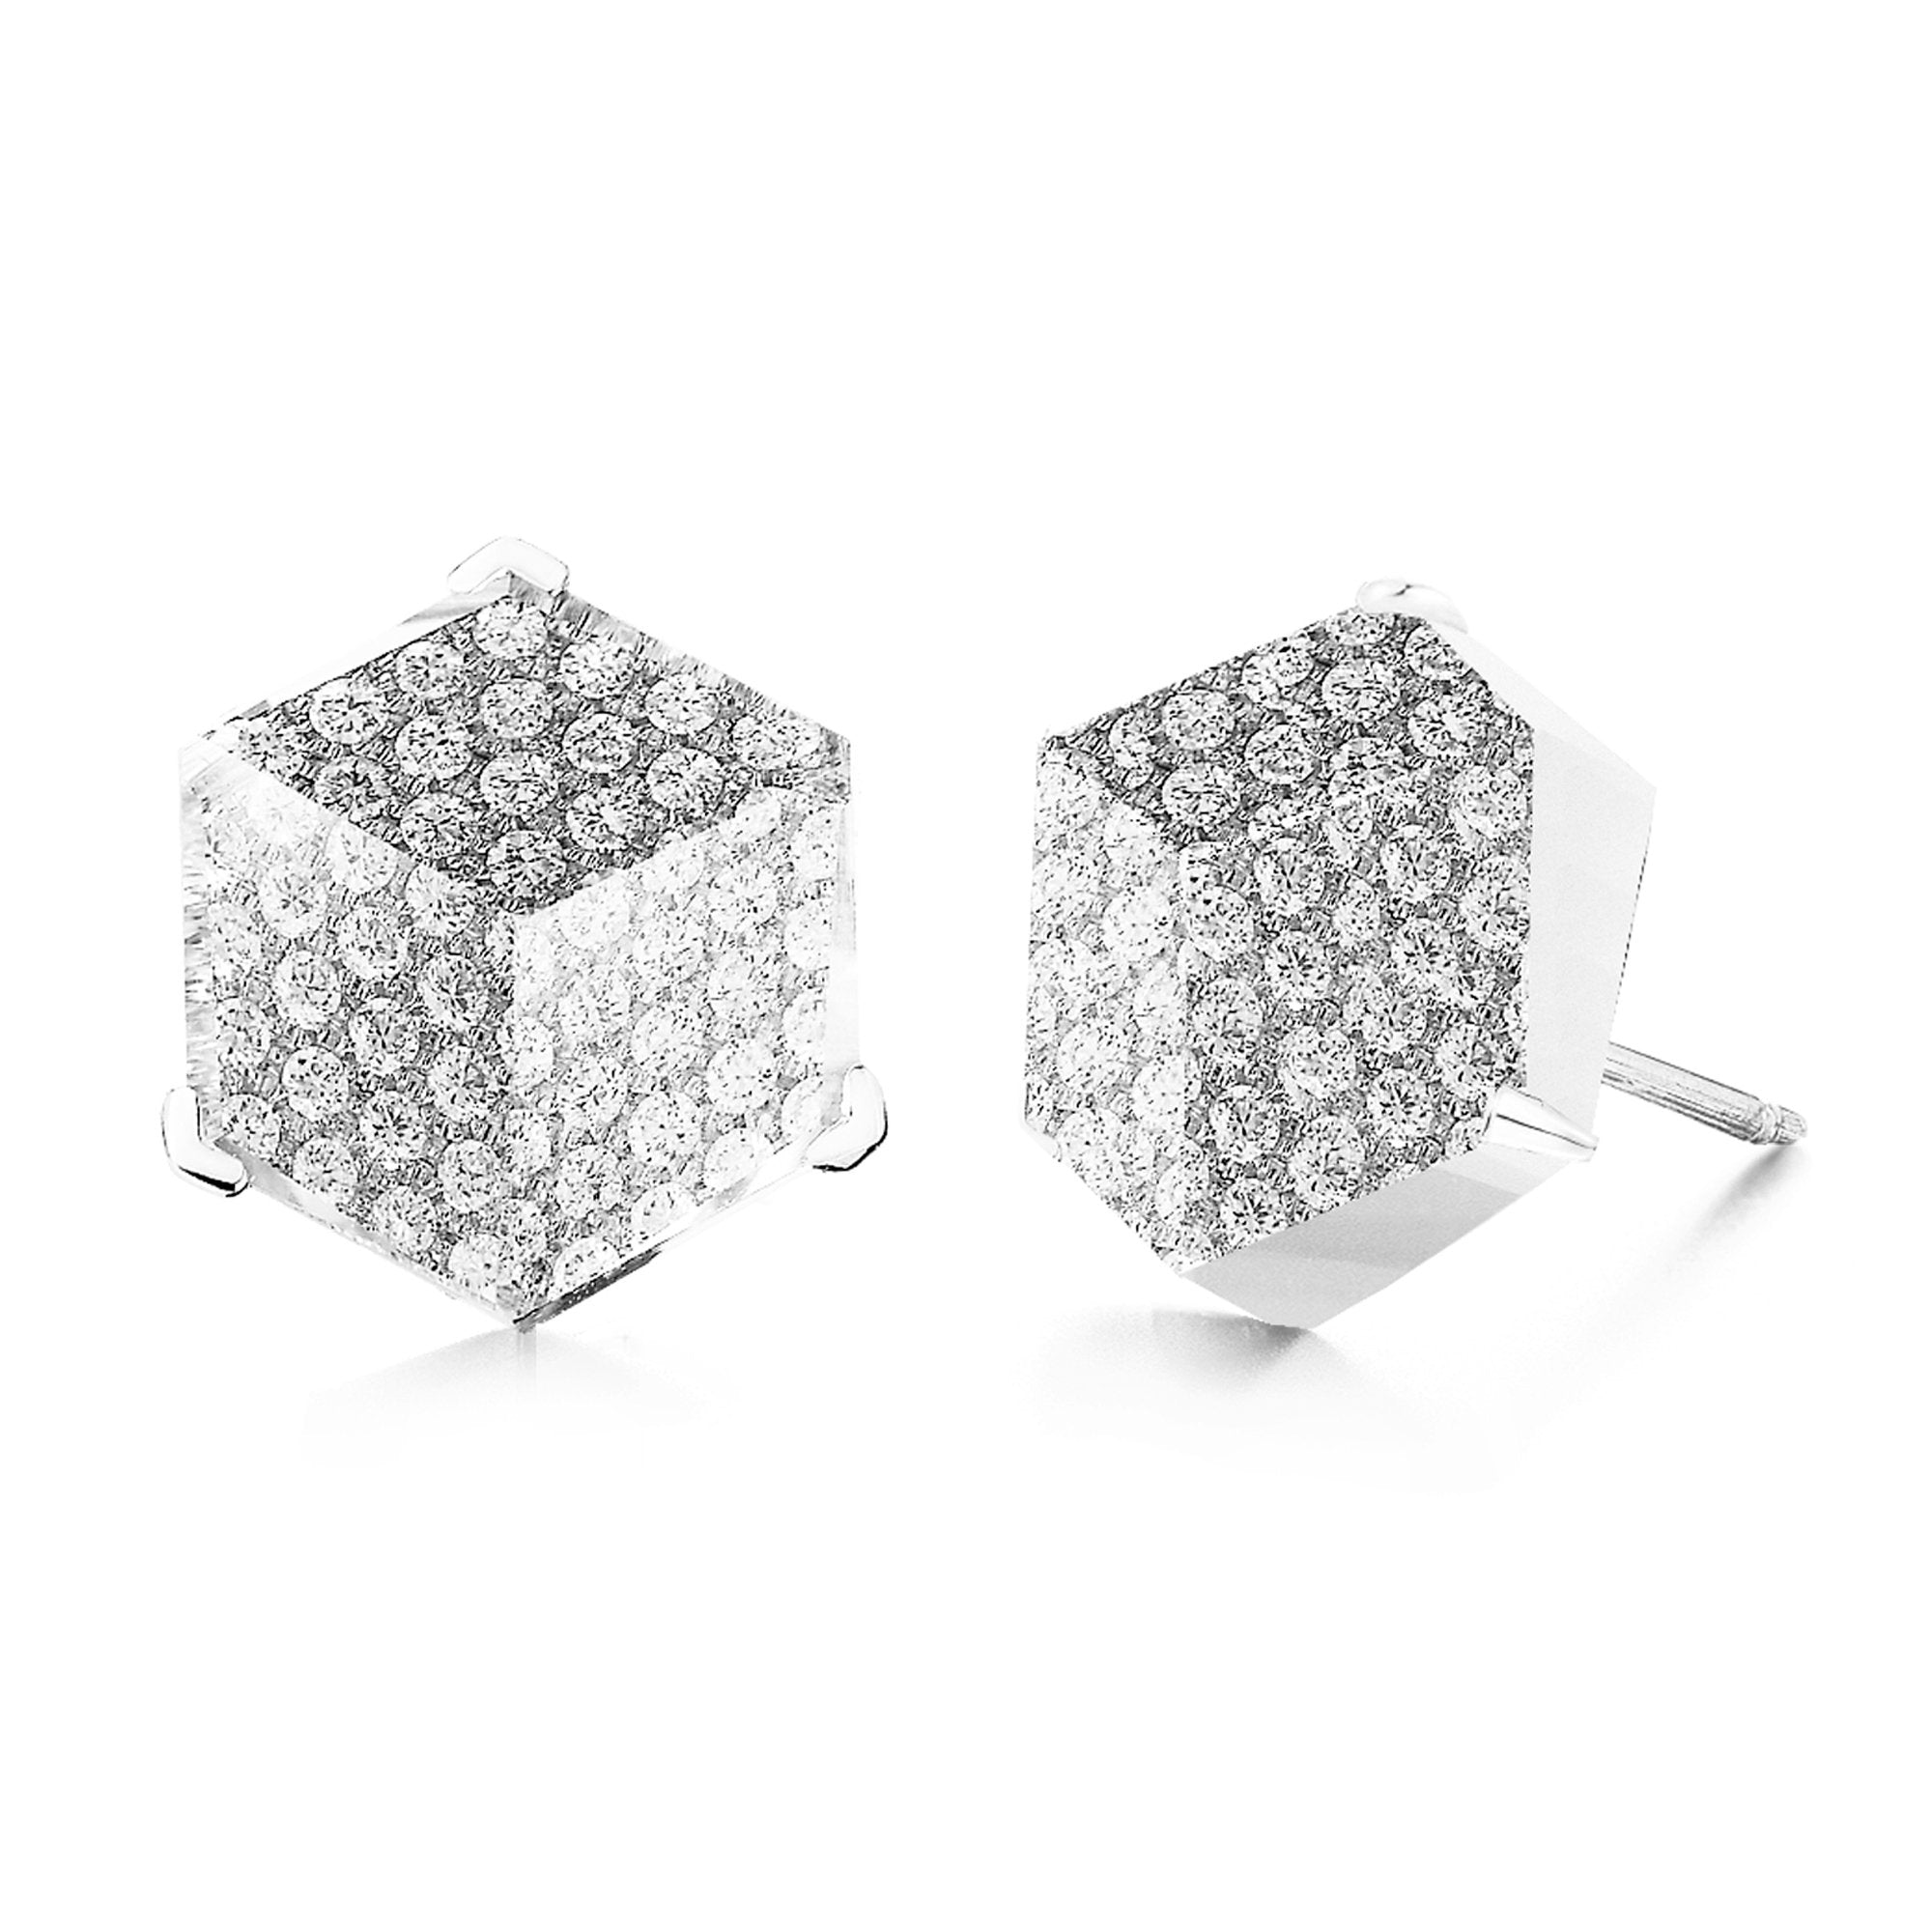 White Topaz and Diamond 'Brillante® Valentina' Stud Earrings - Paolo Costagli - 1